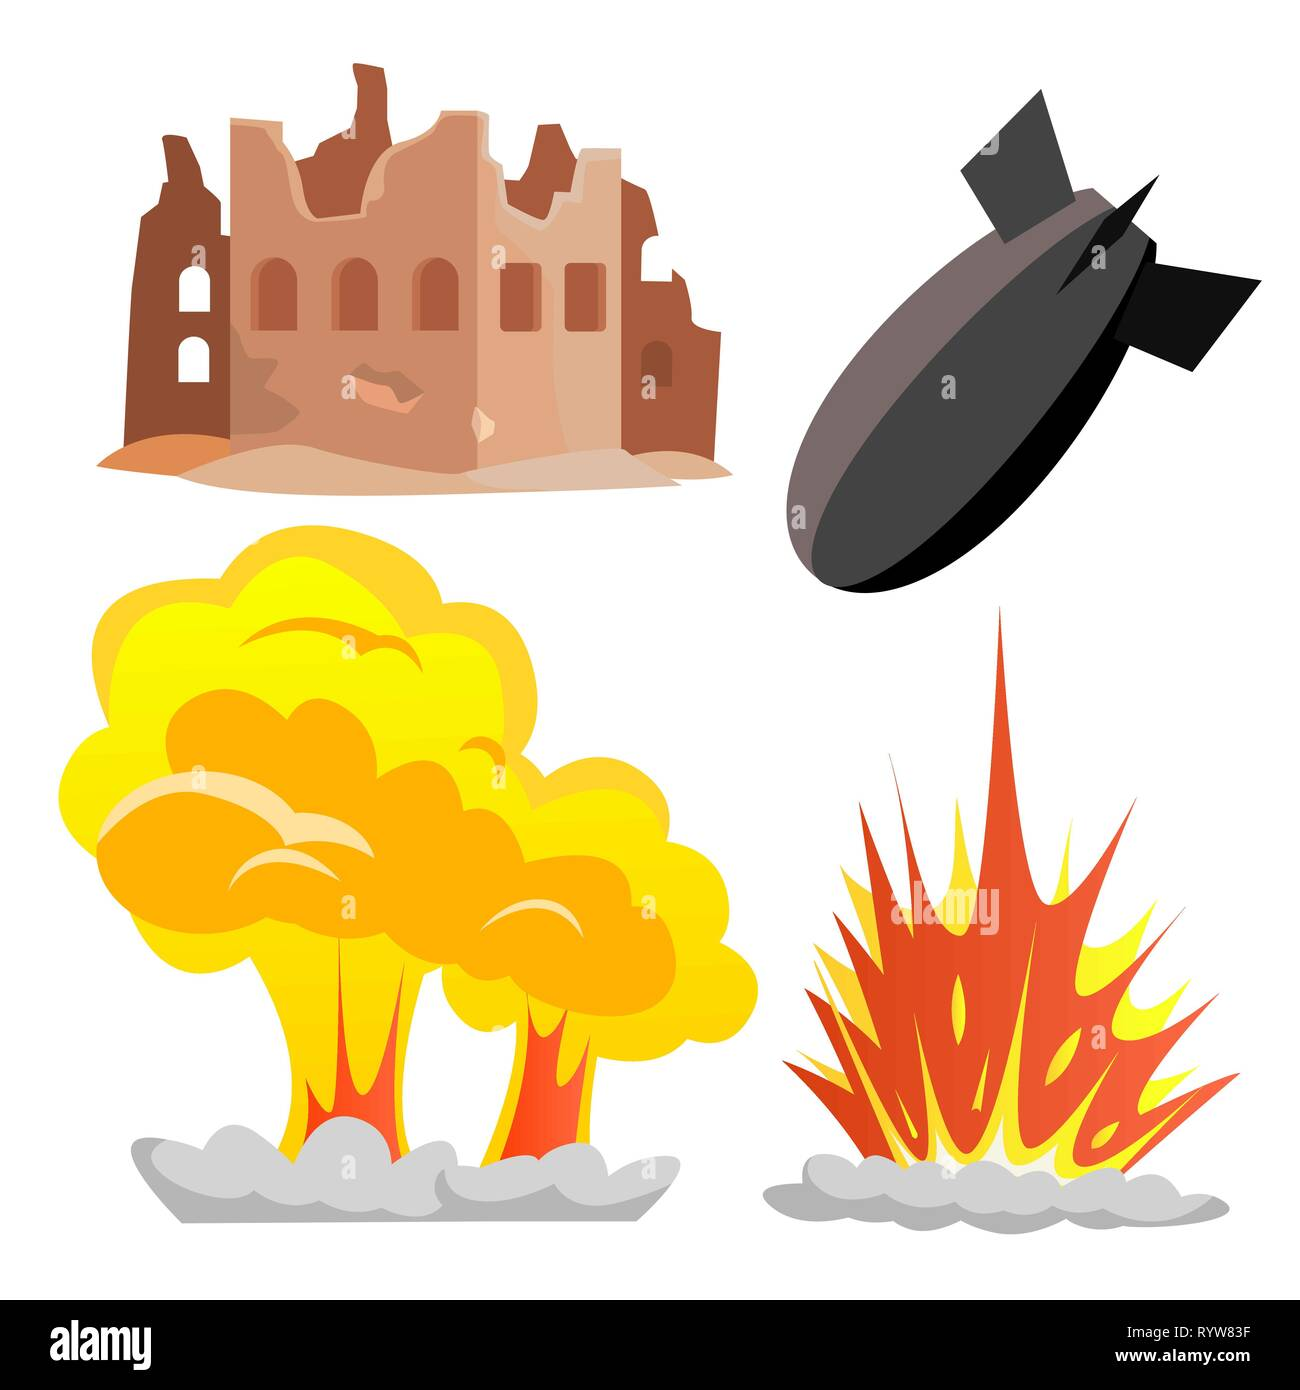 nuclear bomb blast vector icon military war conflict isolated flat cartoon illustration stock vector image art alamy https www alamy com nuclear bomb blast vector icon military war conflict isolated flat cartoon illustration image240885667 html